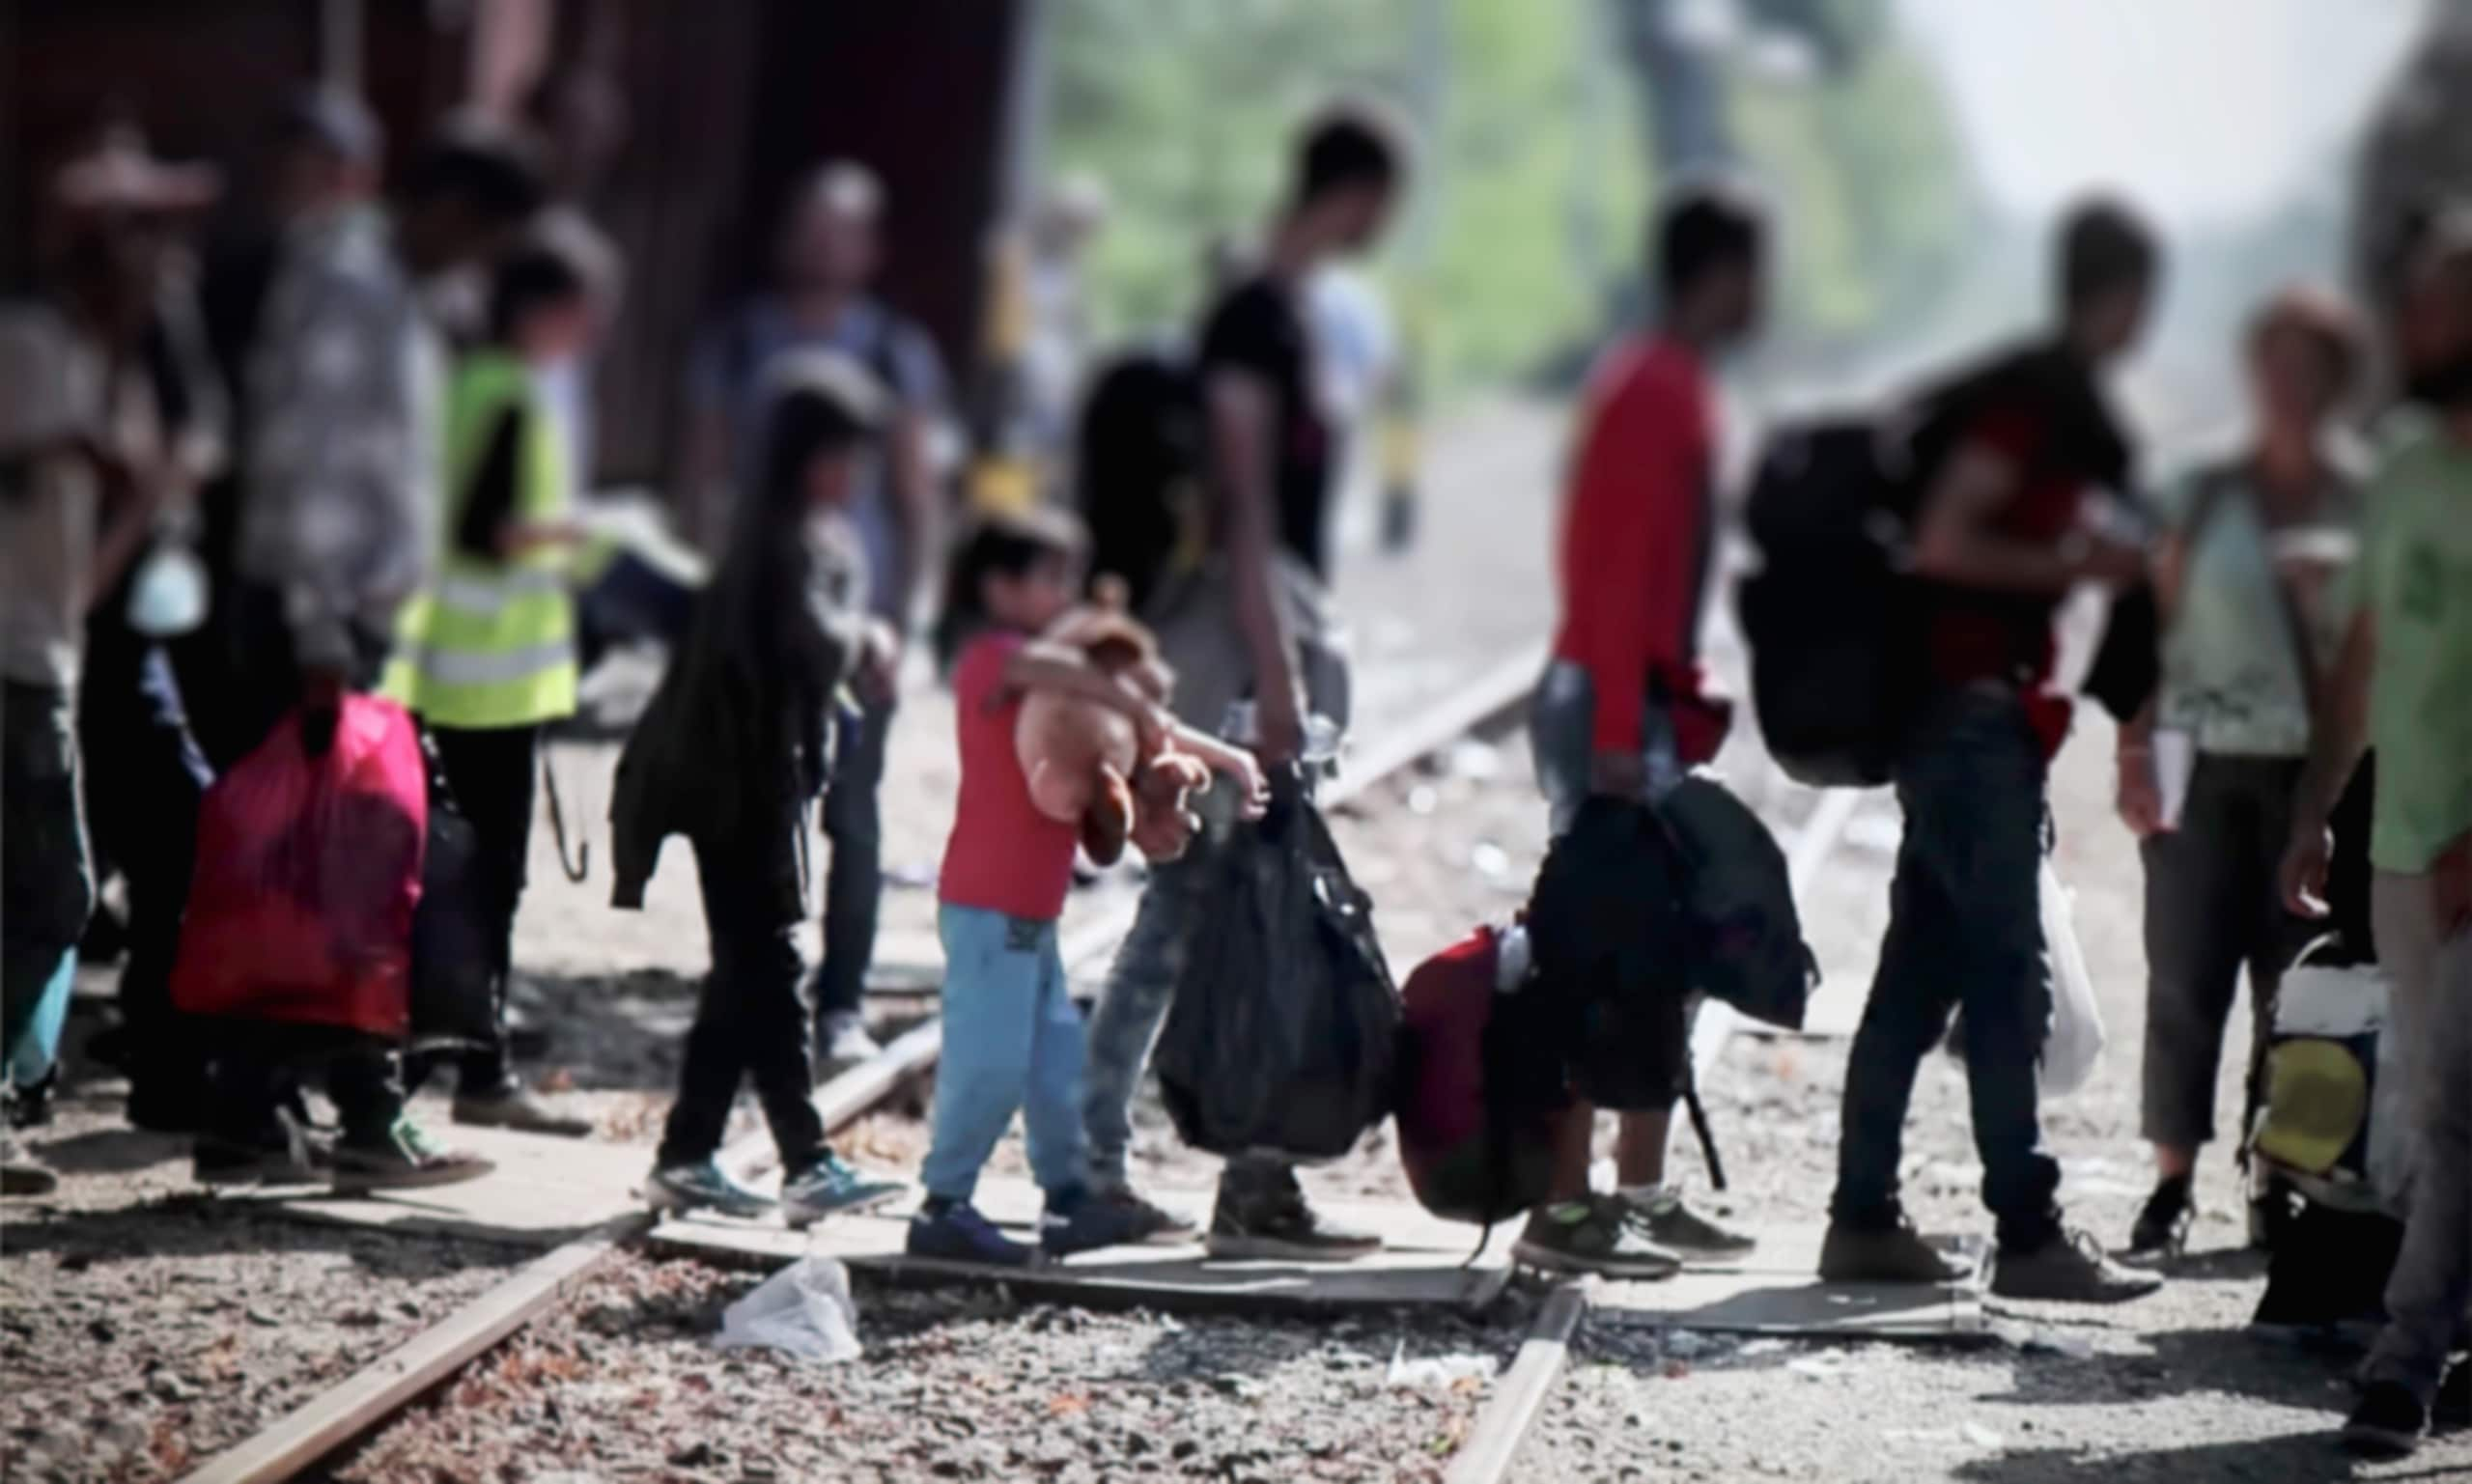 Refugees crossing train tracks